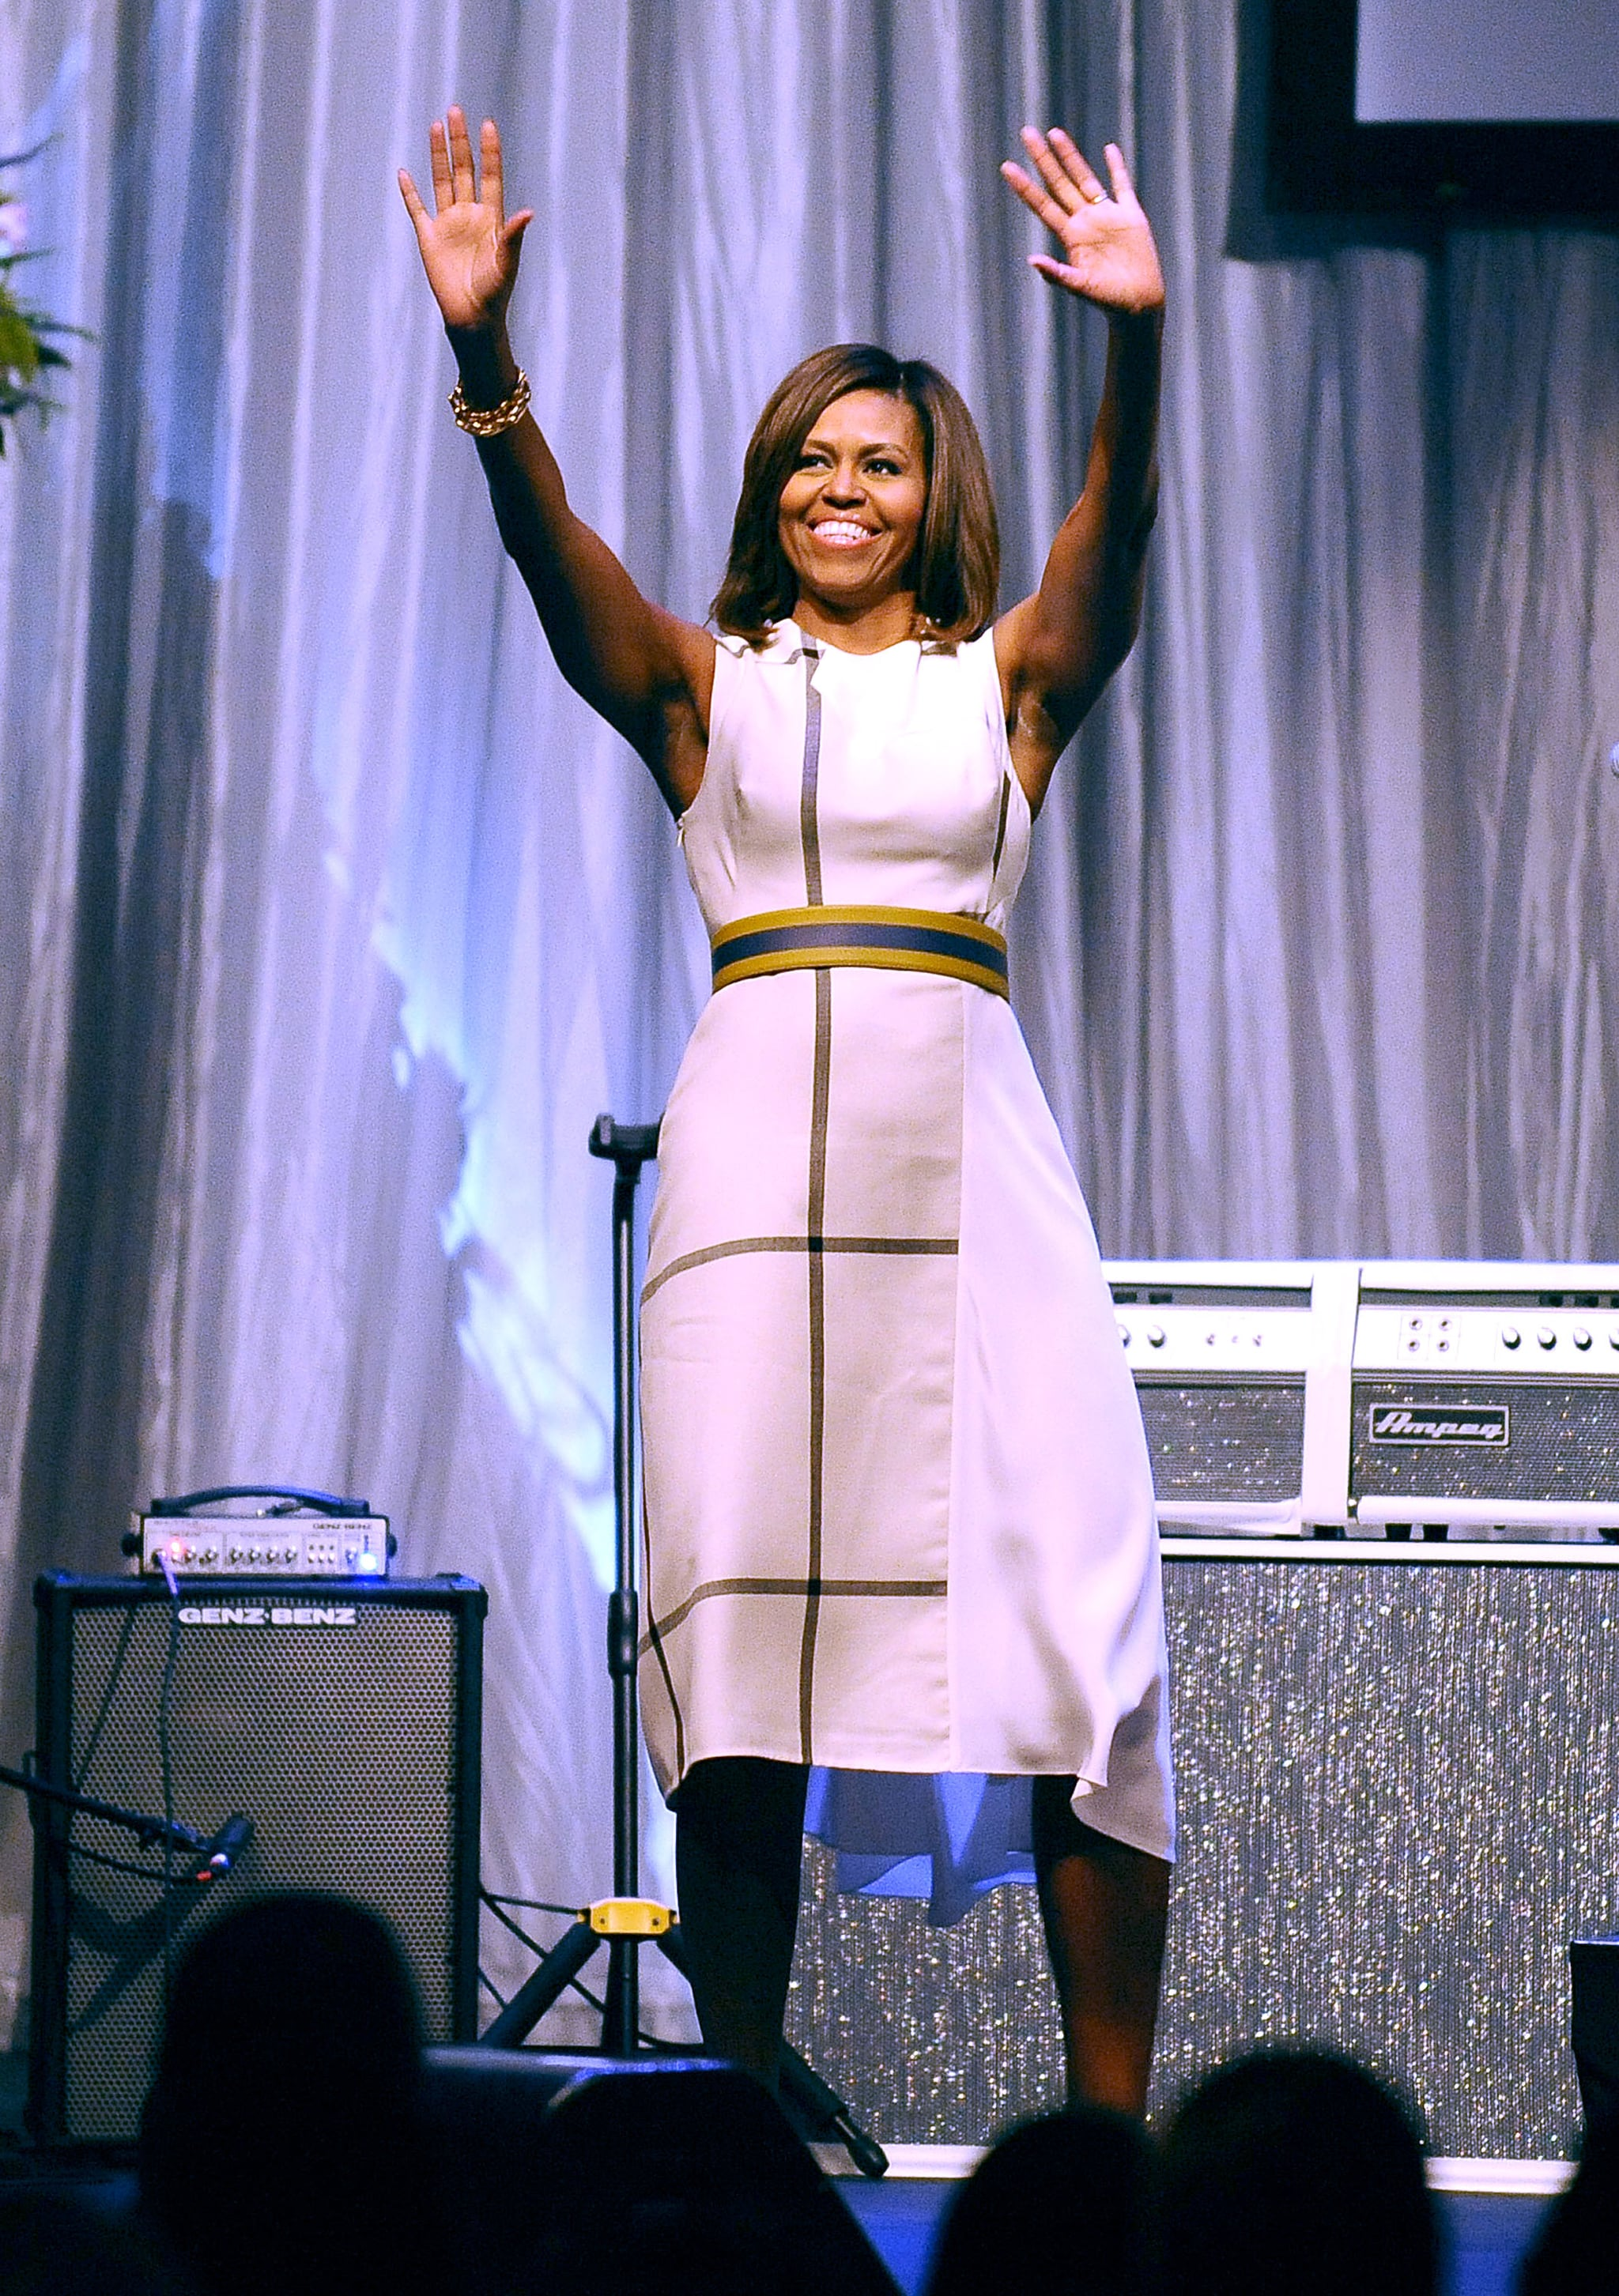 At the Grammy Museum's Jane Ortner Education Award Luncheon, the FLOTUS sported this geometric 3.1 Phillip Lim design, smartly accessorizing with nothing but a chunky bauble on her wrist.